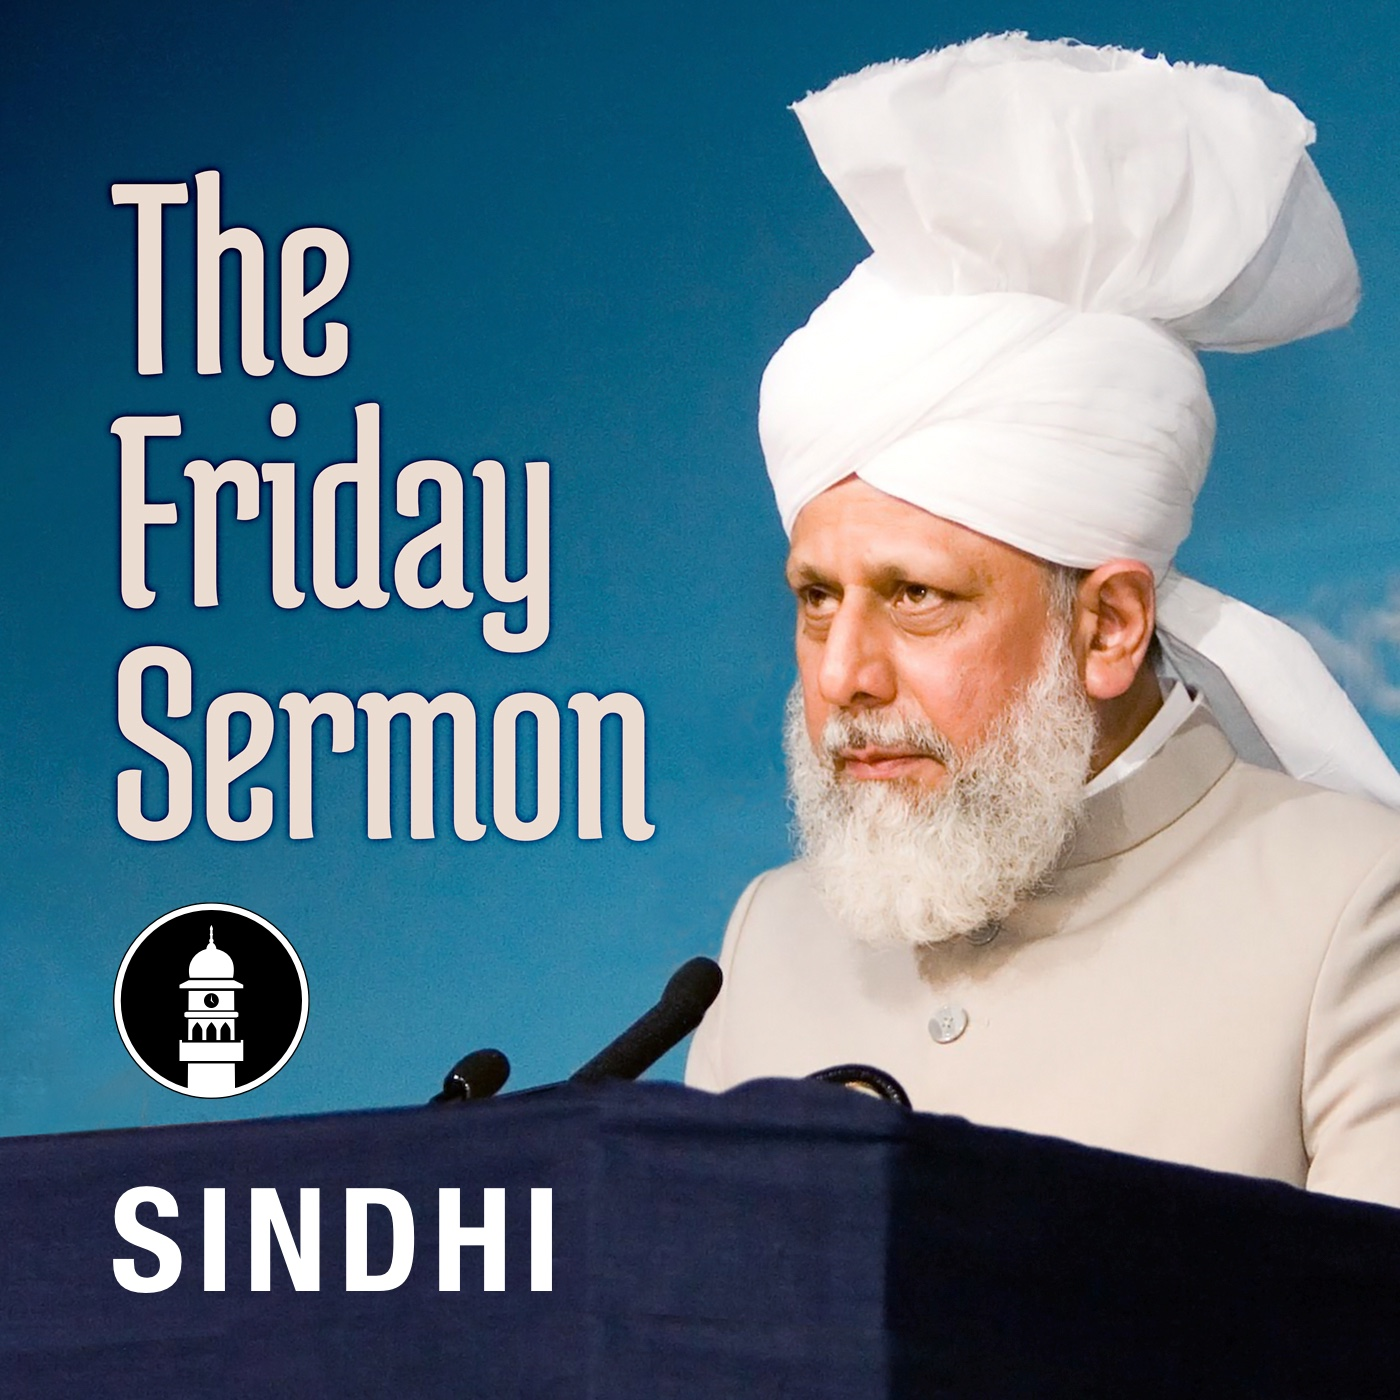 Sindhi Friday Sermon by Head of Ahmadiyya Muslim Community